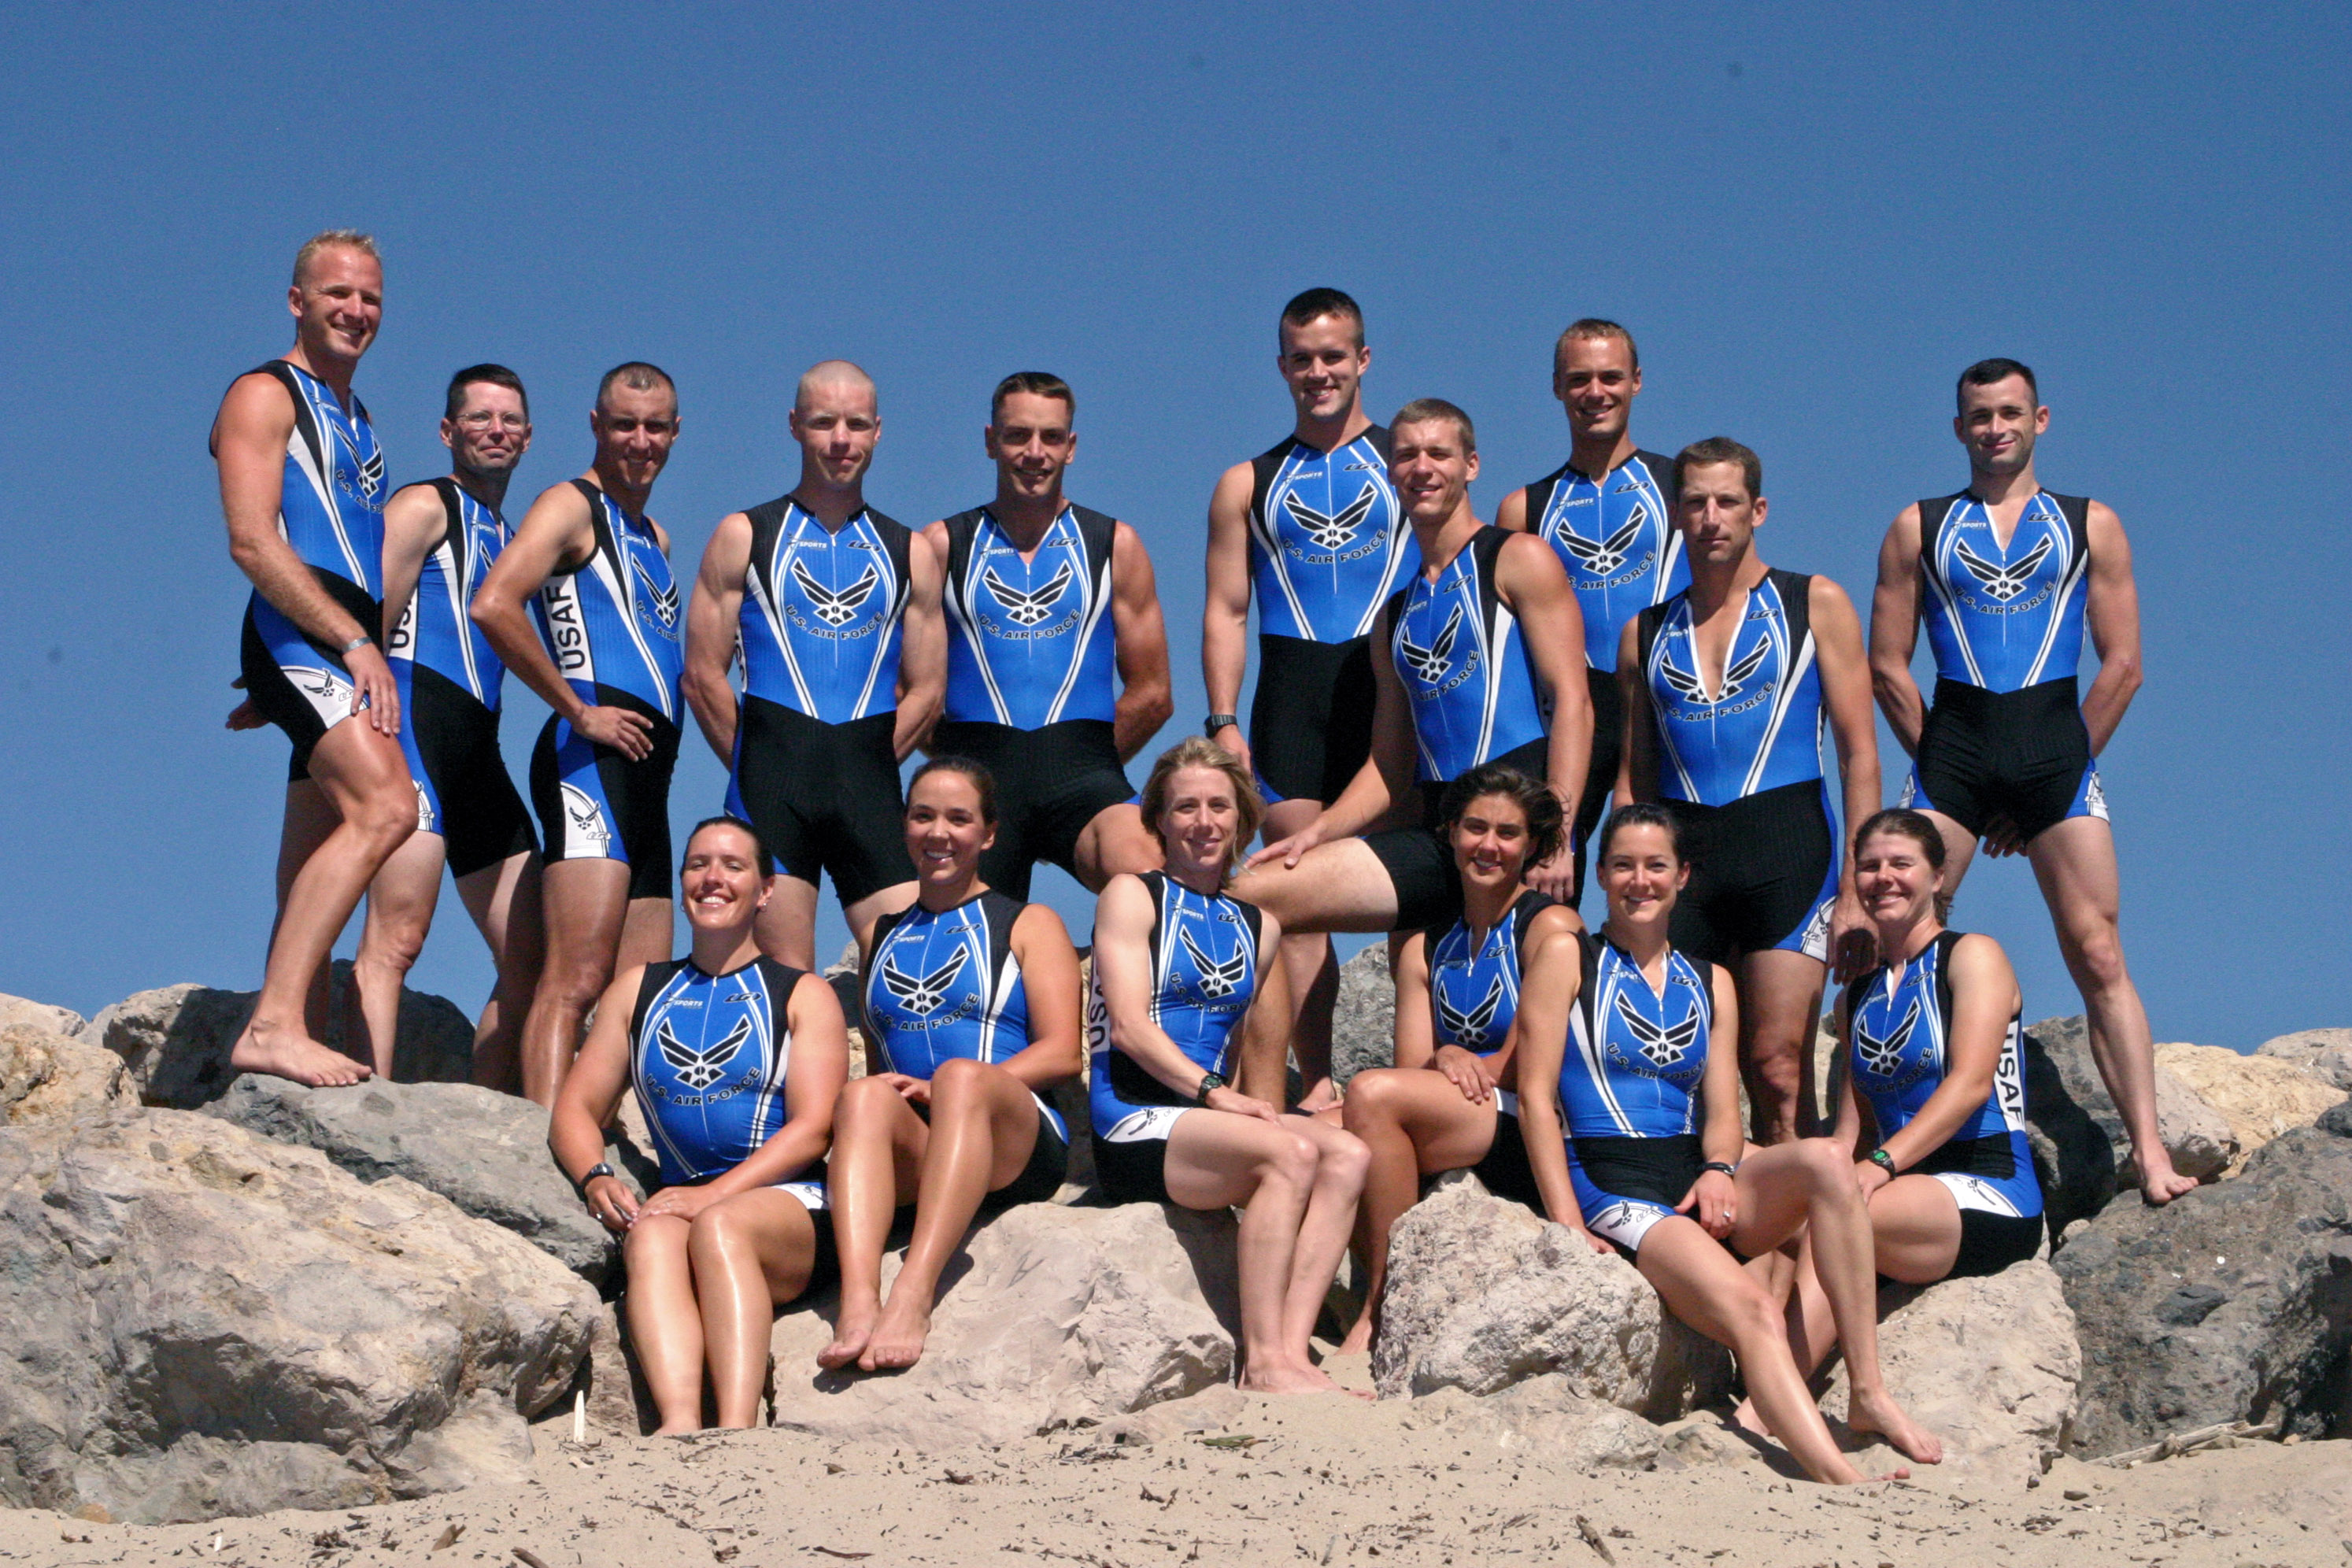 US Air Force Triathlon Team 2007